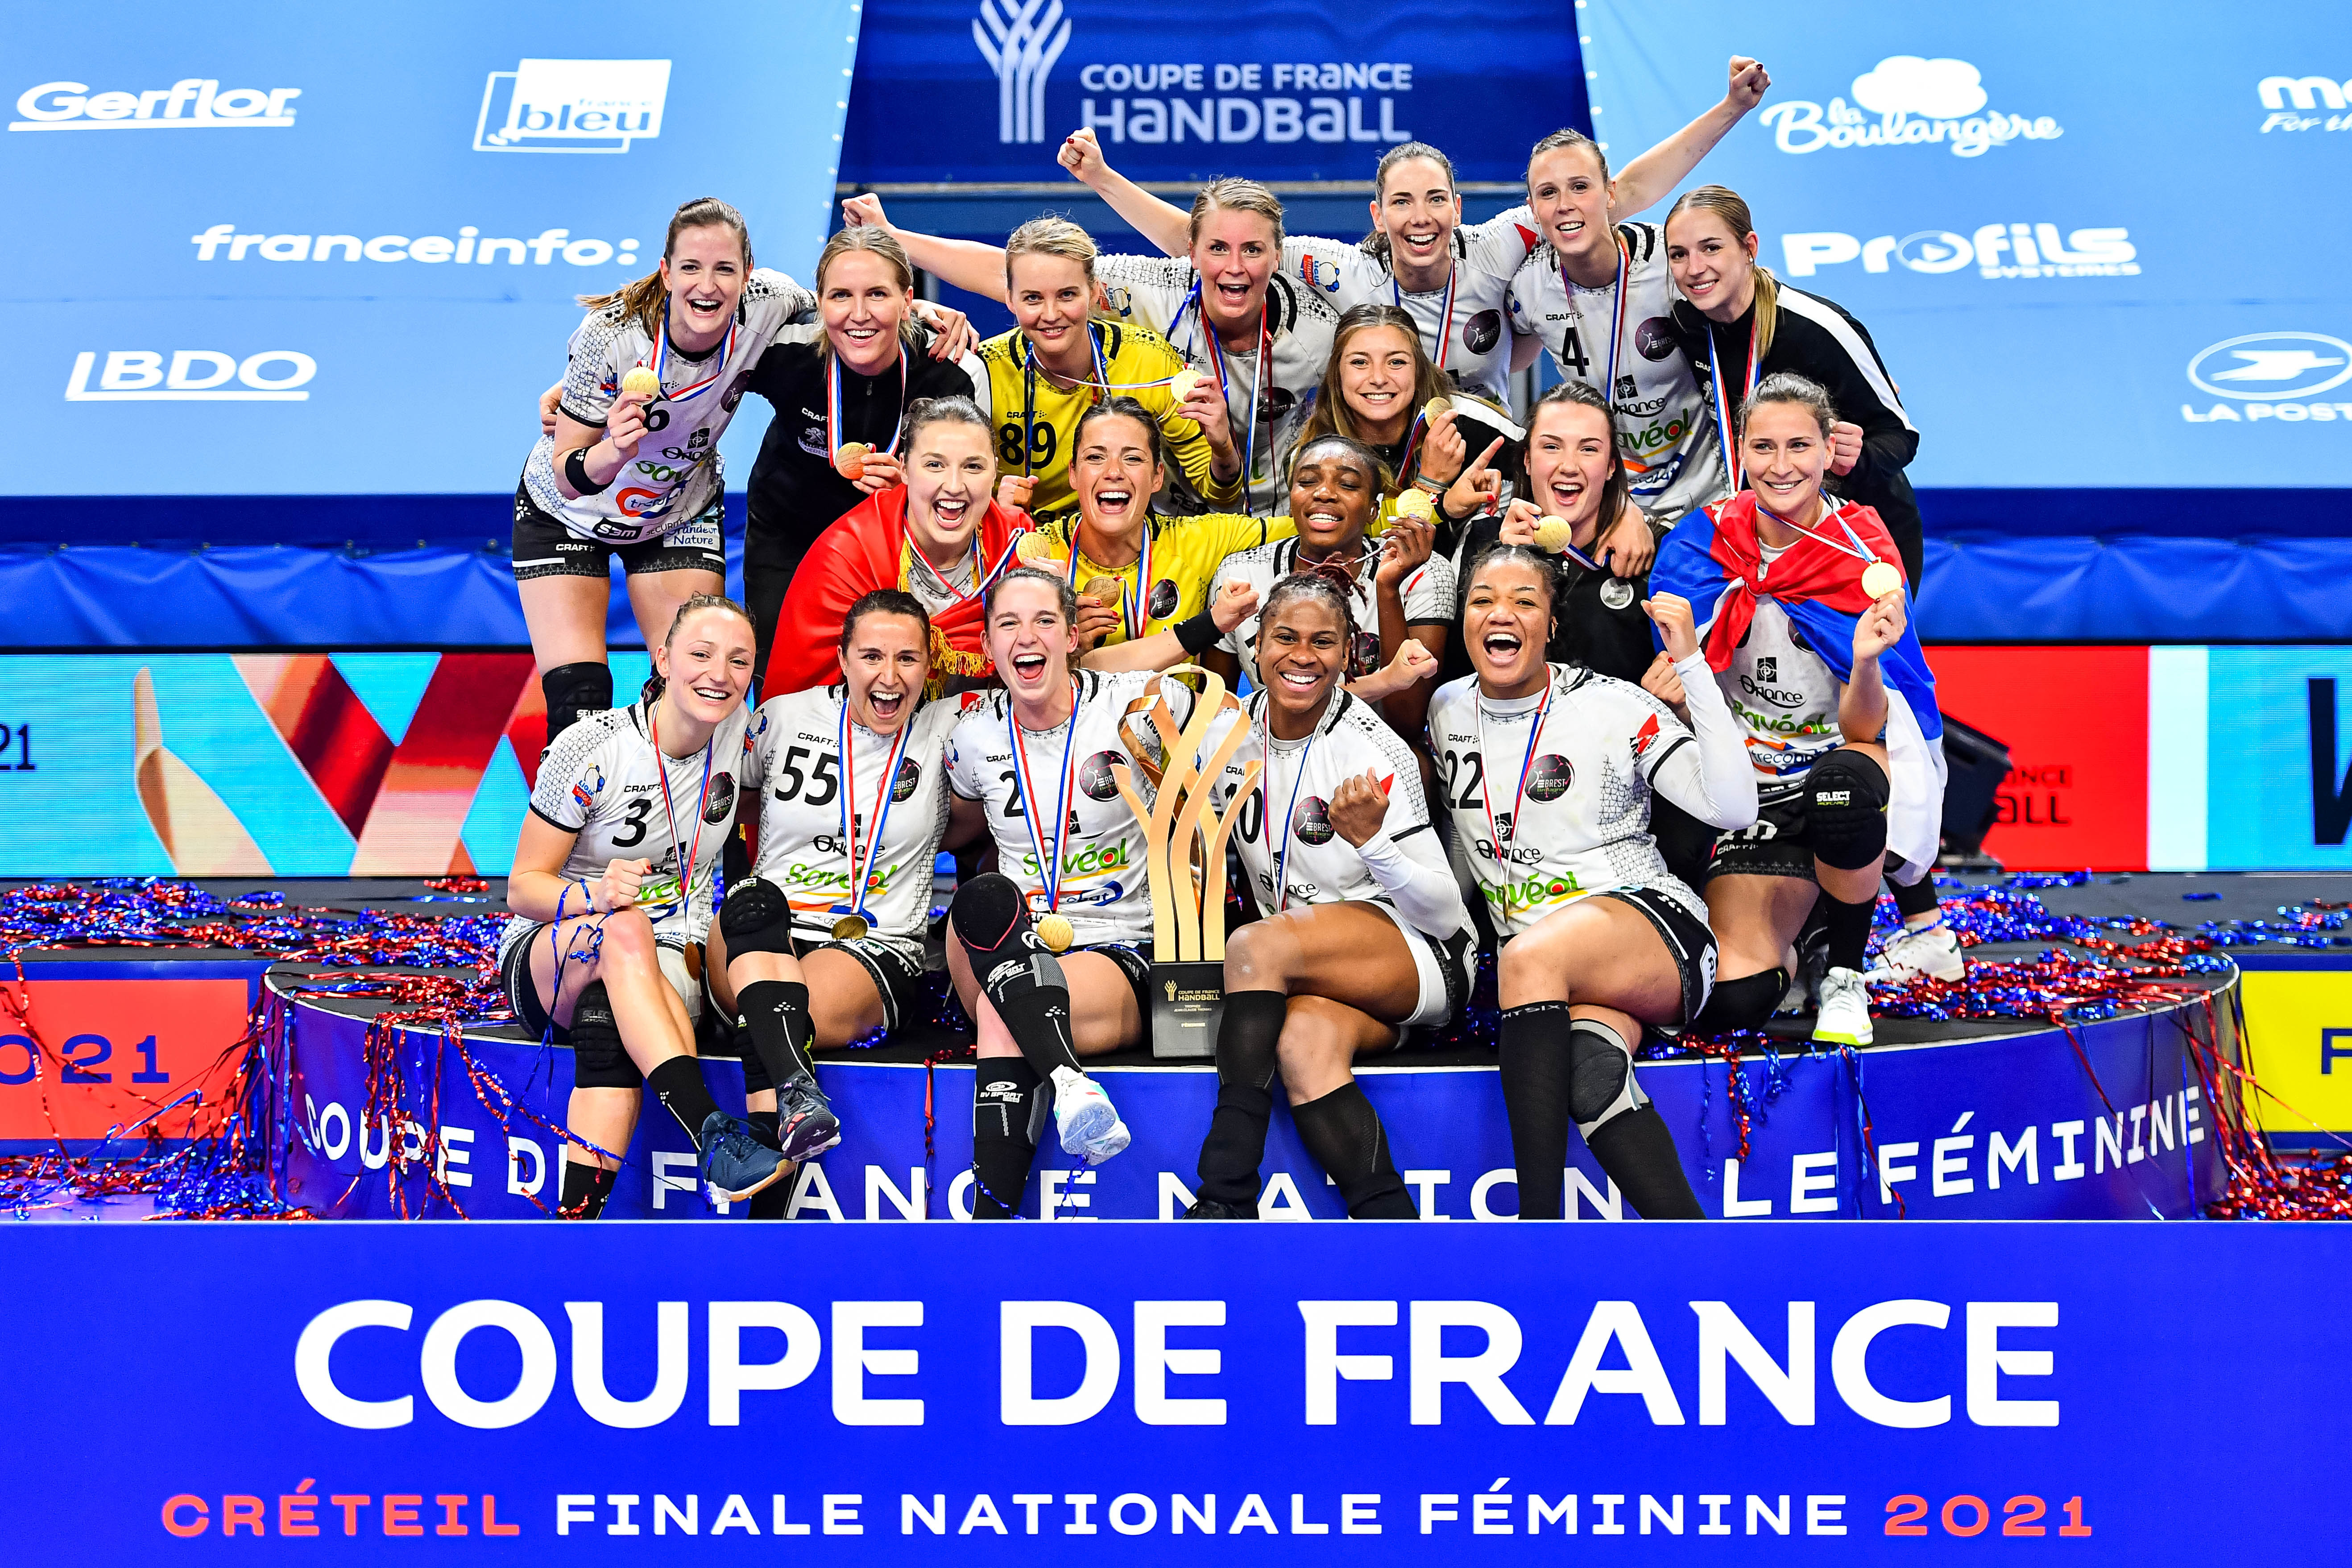 Players of Brest celebrate their victory with the trophy during the women's French Cup handball final match between Nantes and Brest on May 15, 2021 in Creteil, France. (Photo by Baptiste Fernandez/Icon Sport) - Palais des Sports Robert Oubron - Creteil (France)